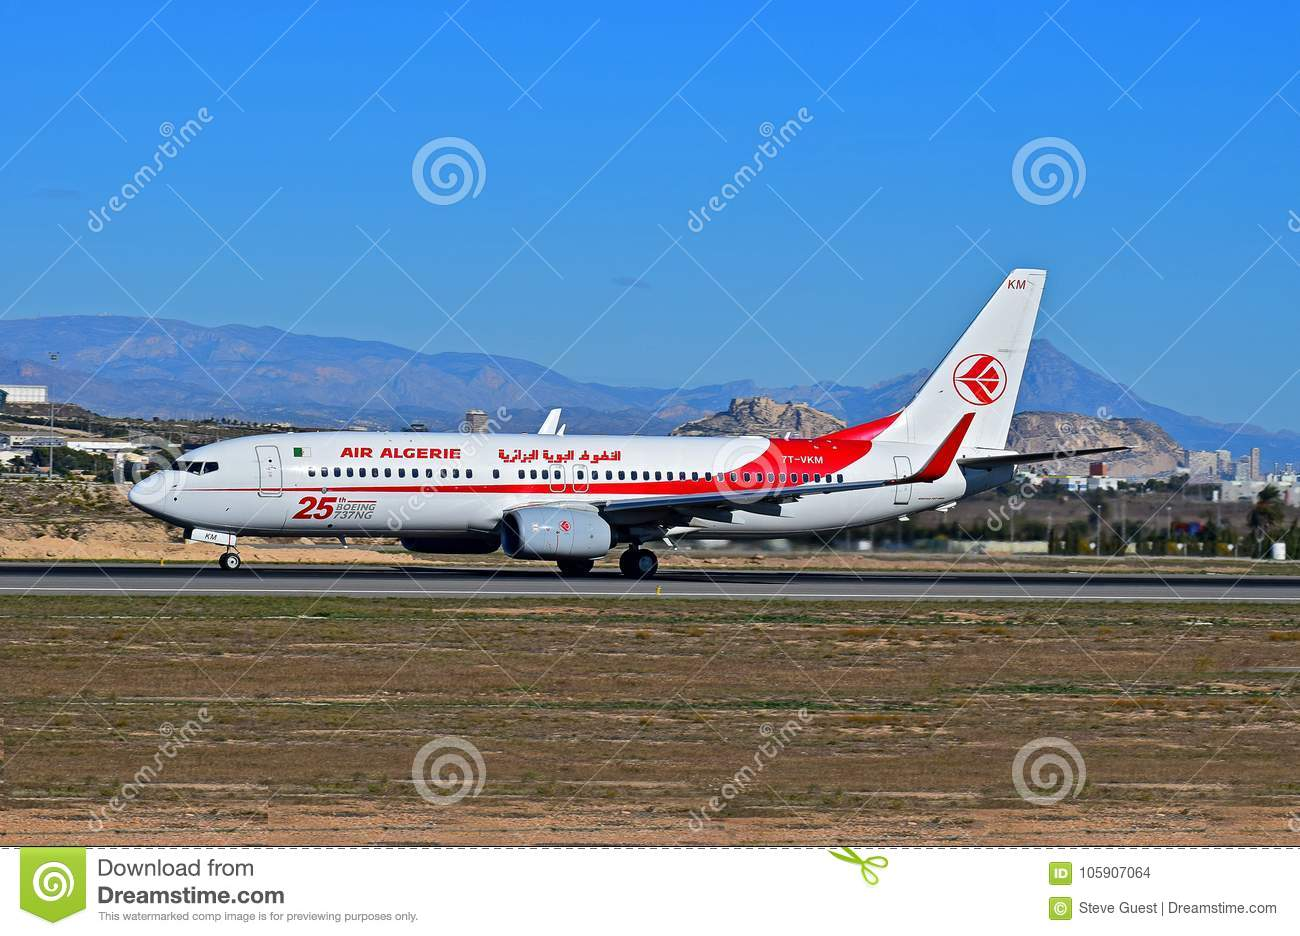 Air algerie at alicante airport editorial stock image - Stock uno alicante ...